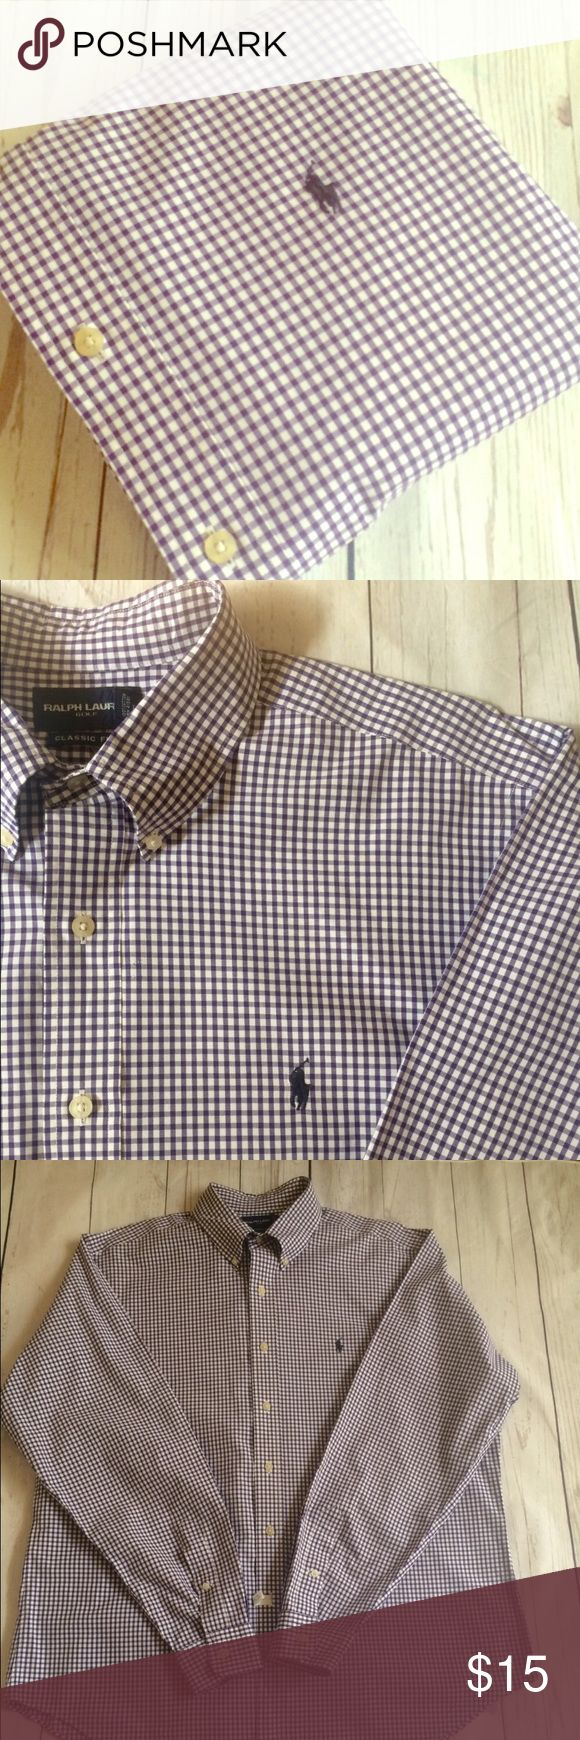 """🐰EASTER SALE🐰Polo•Ralph•Lauren•XL•Shirt•LSU 🐰EASTER SALE🐰 Men's Polo shirts are $15/ea🐰 No offers will be accepted or further reductions taken🐰 men's  long sleeve button front 100% cotton oxford shirt•XL CLASSIC FIT per tag•See measurements below•Signature pony at chest•no fraying• LSU embroidery at cuff, as pictured•has a couple small, threadbare spots on chest, near button column, as pictured• most likely from a name tag• Chest: 26.5"""" Length: 31"""" Sleeve: 36"""" Shoulder: 20"""" Polo by…"""